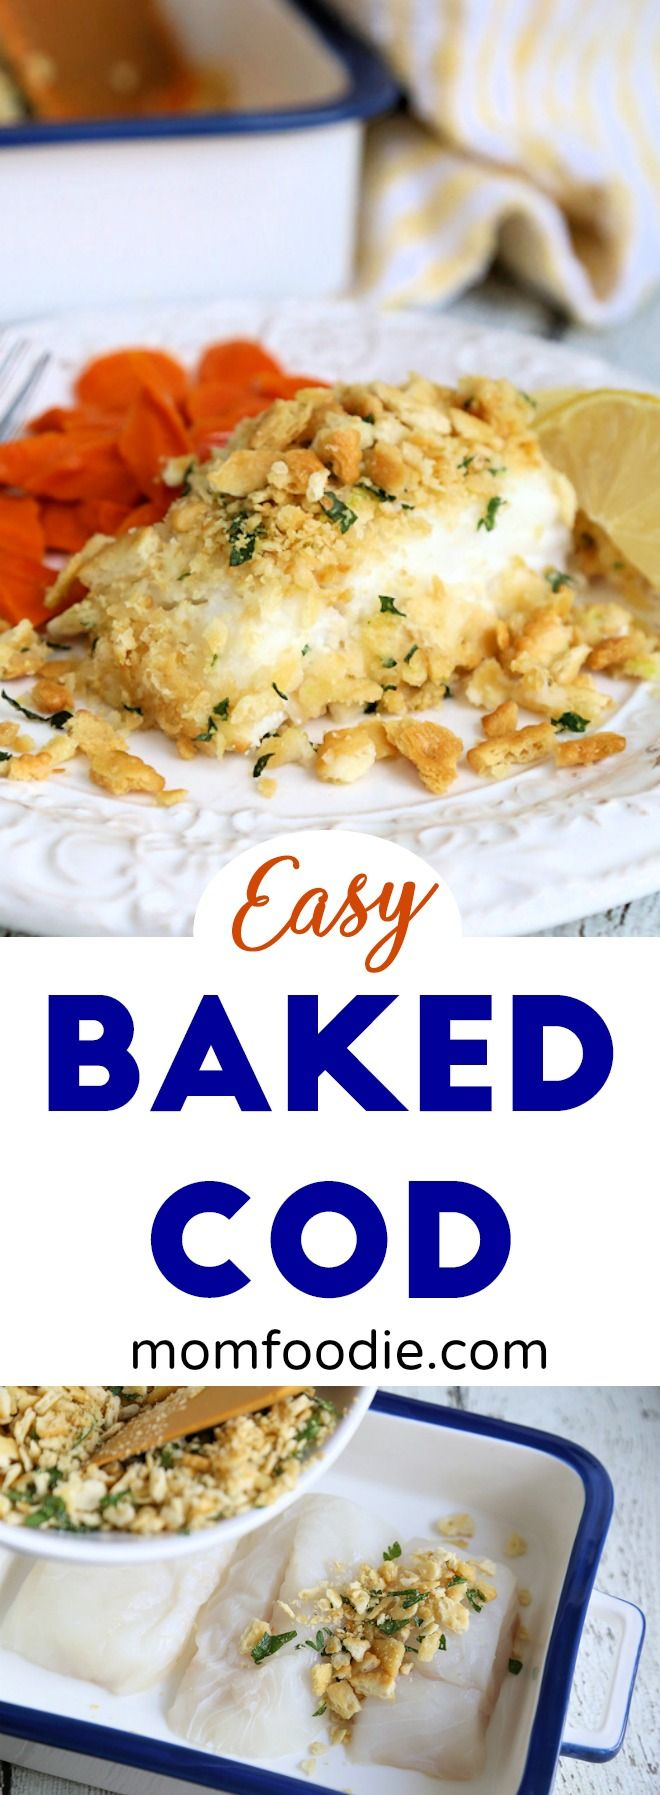 Baked Cod - easy baked cod recipe with craker crumb topping #seafood #cod #fish #fishrecipe via @MomFoodie #fishmeal